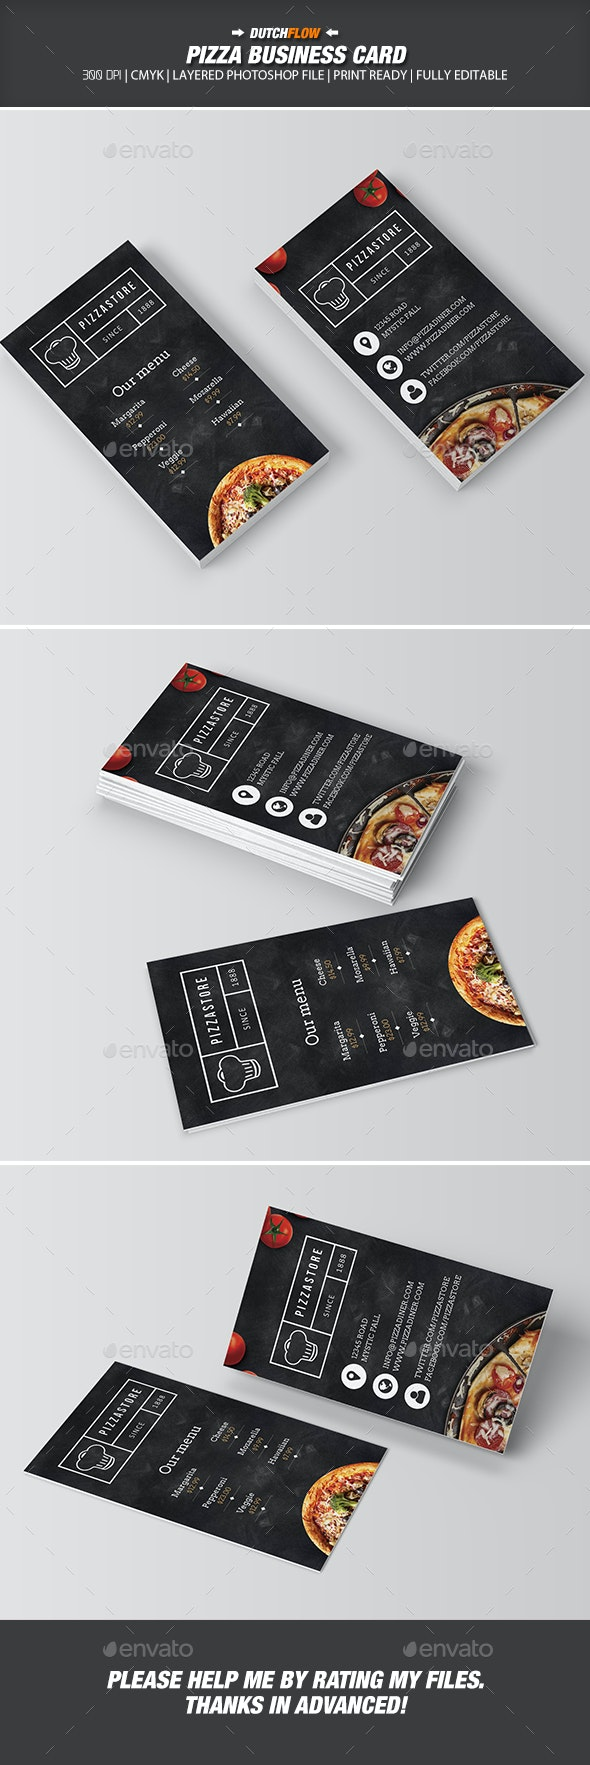 Pizza Business Card - Industry Specific Business Cards